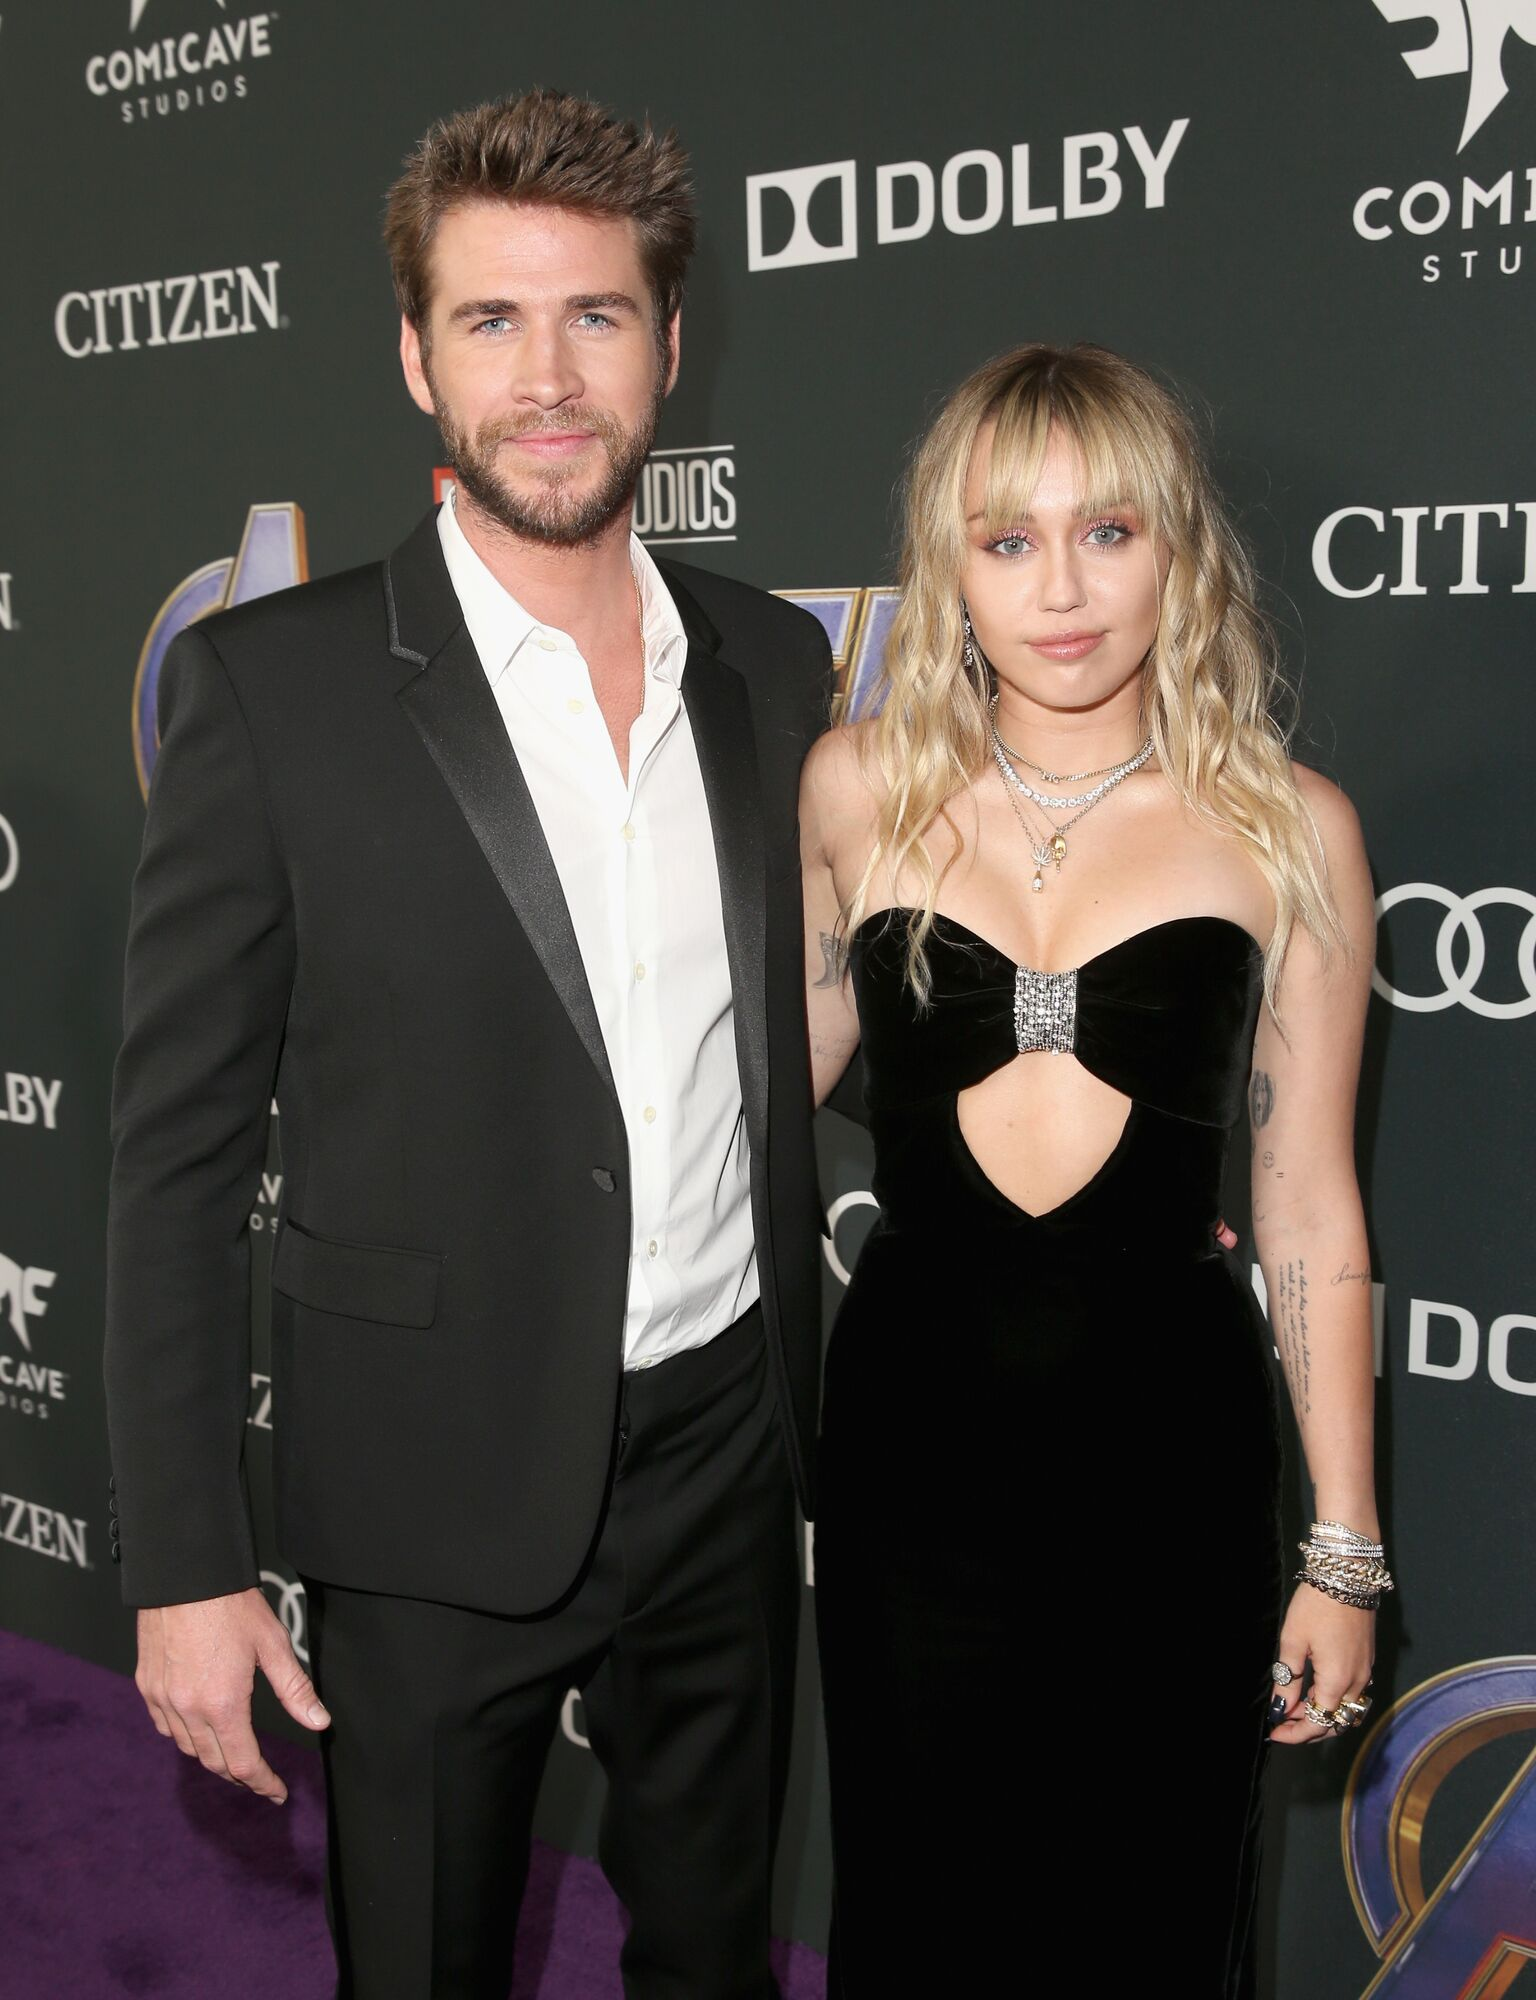 """Liam Hemsworth and Miley Cyrus attend the Los Angeles World Premiere of Marvel Studios' """"Avengers: Endgame"""" l Getty Images"""